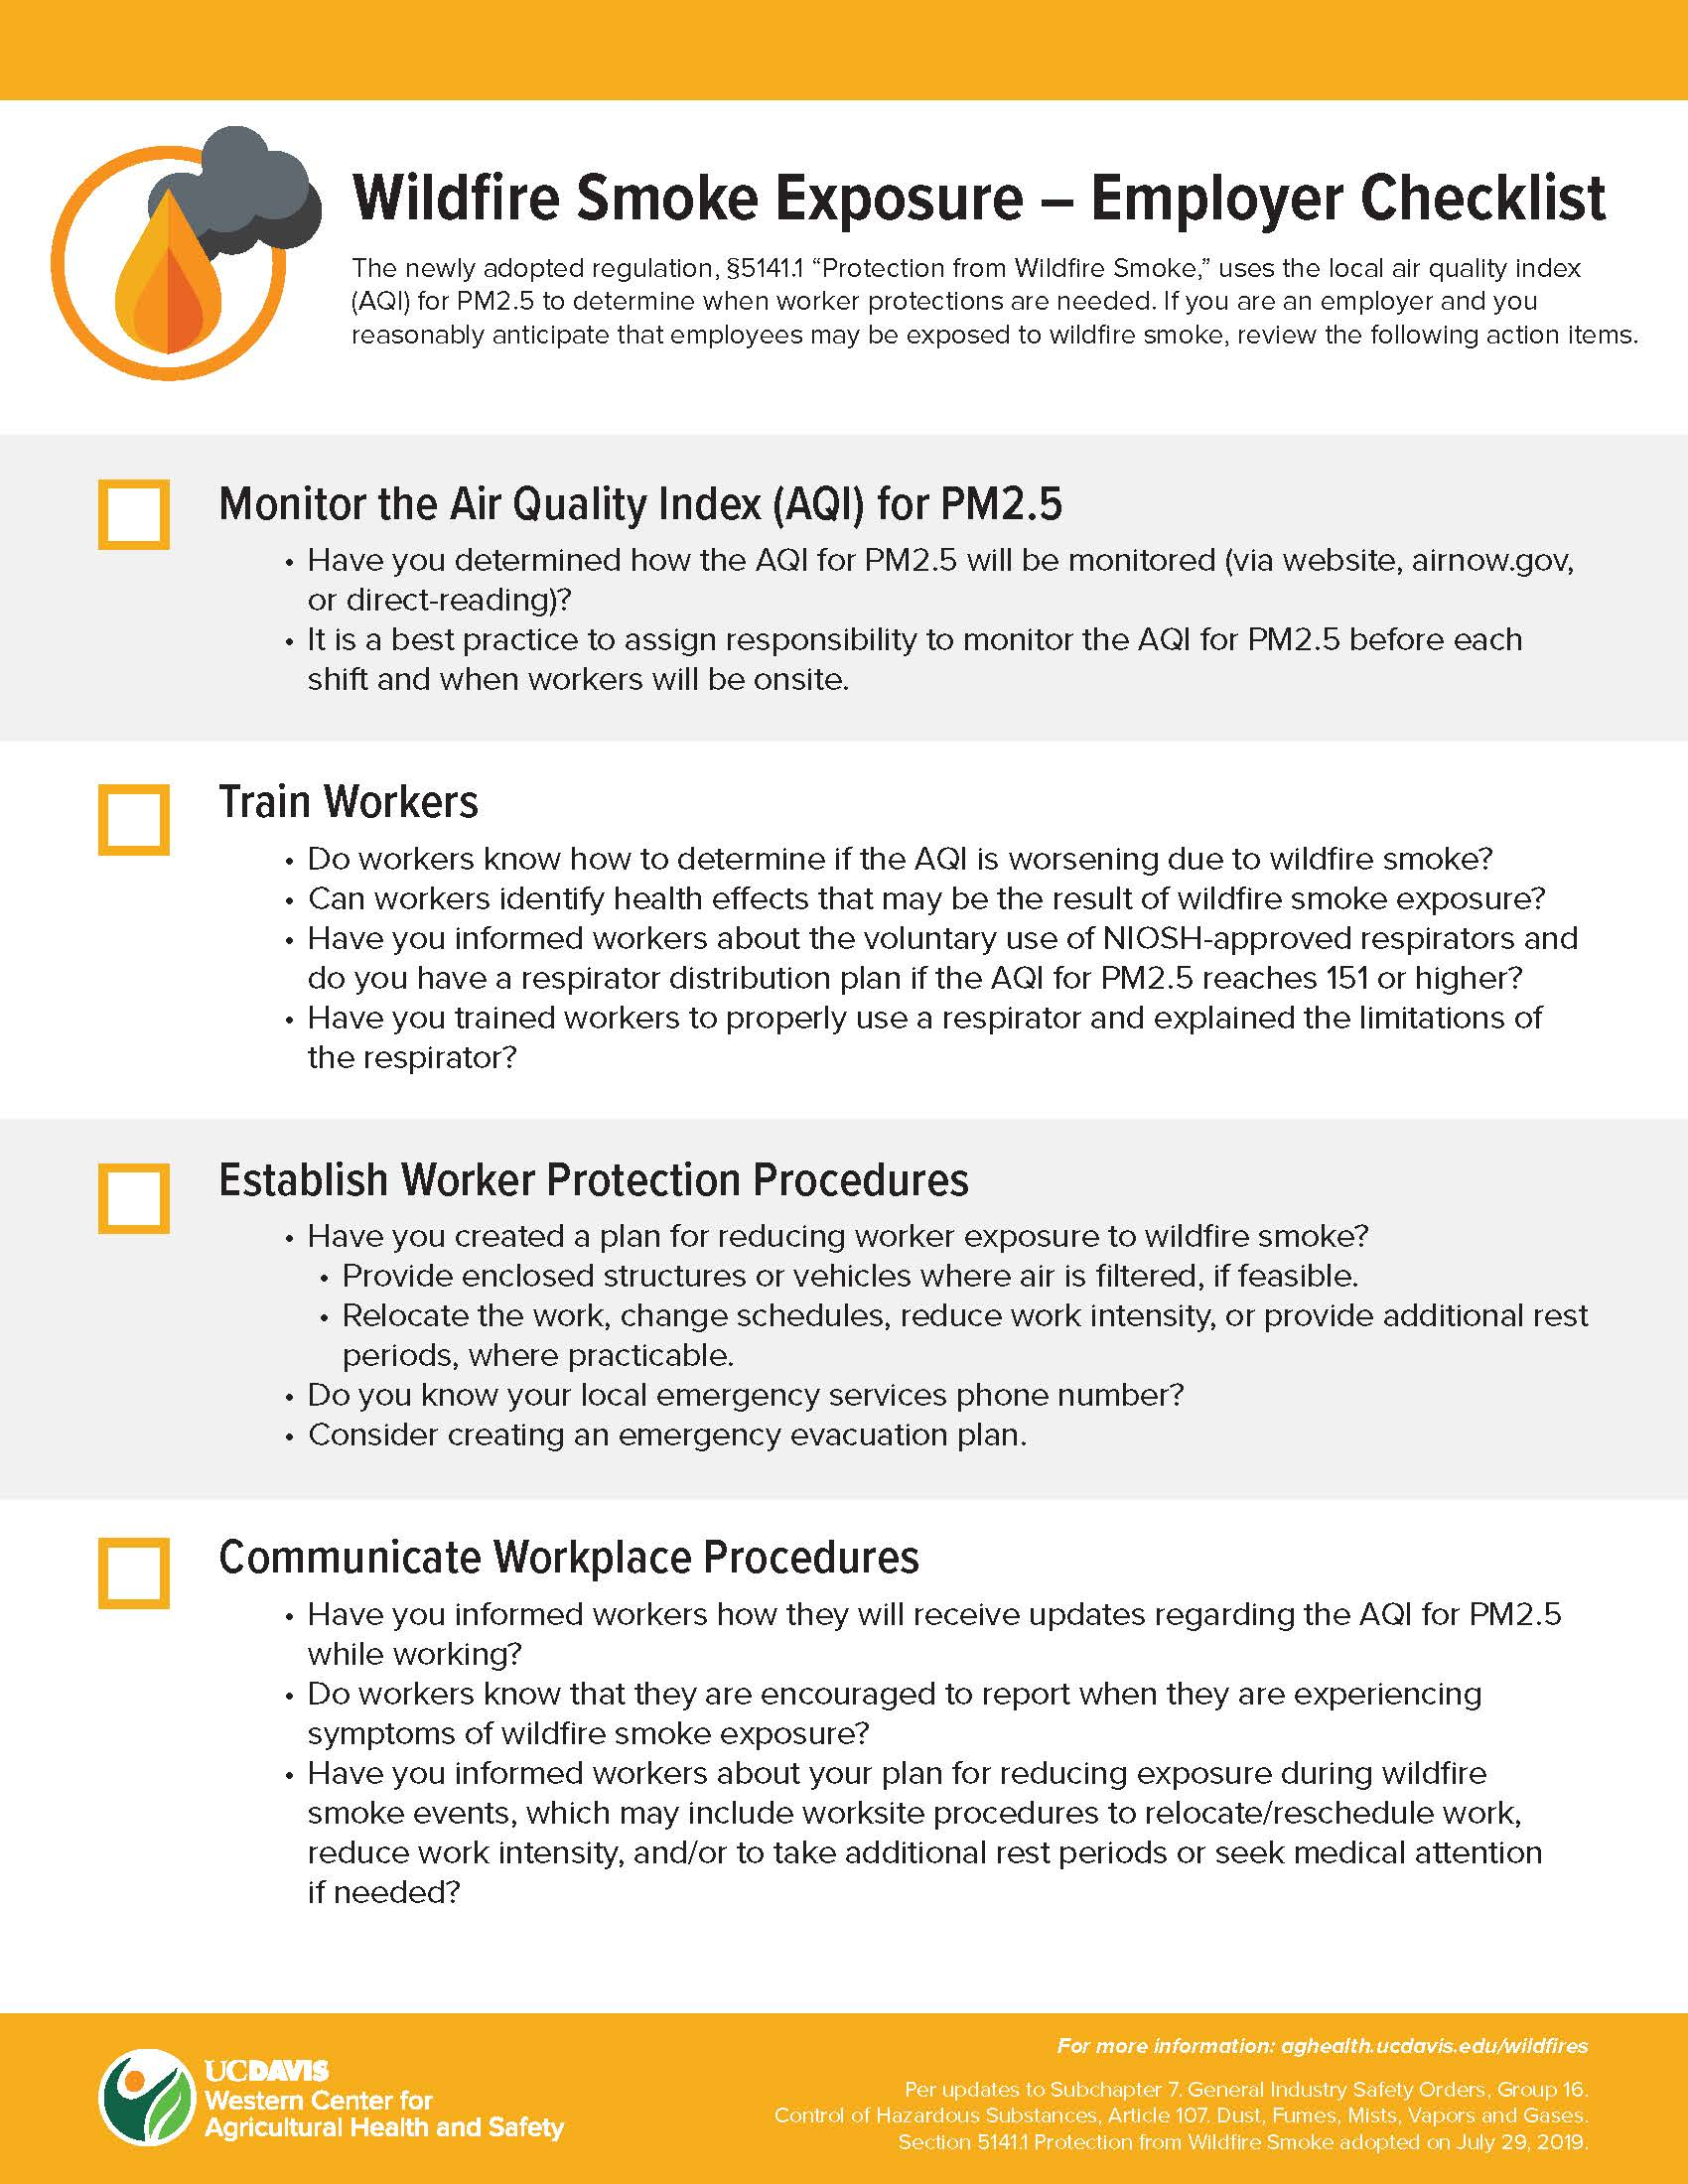 Employer Checklist English